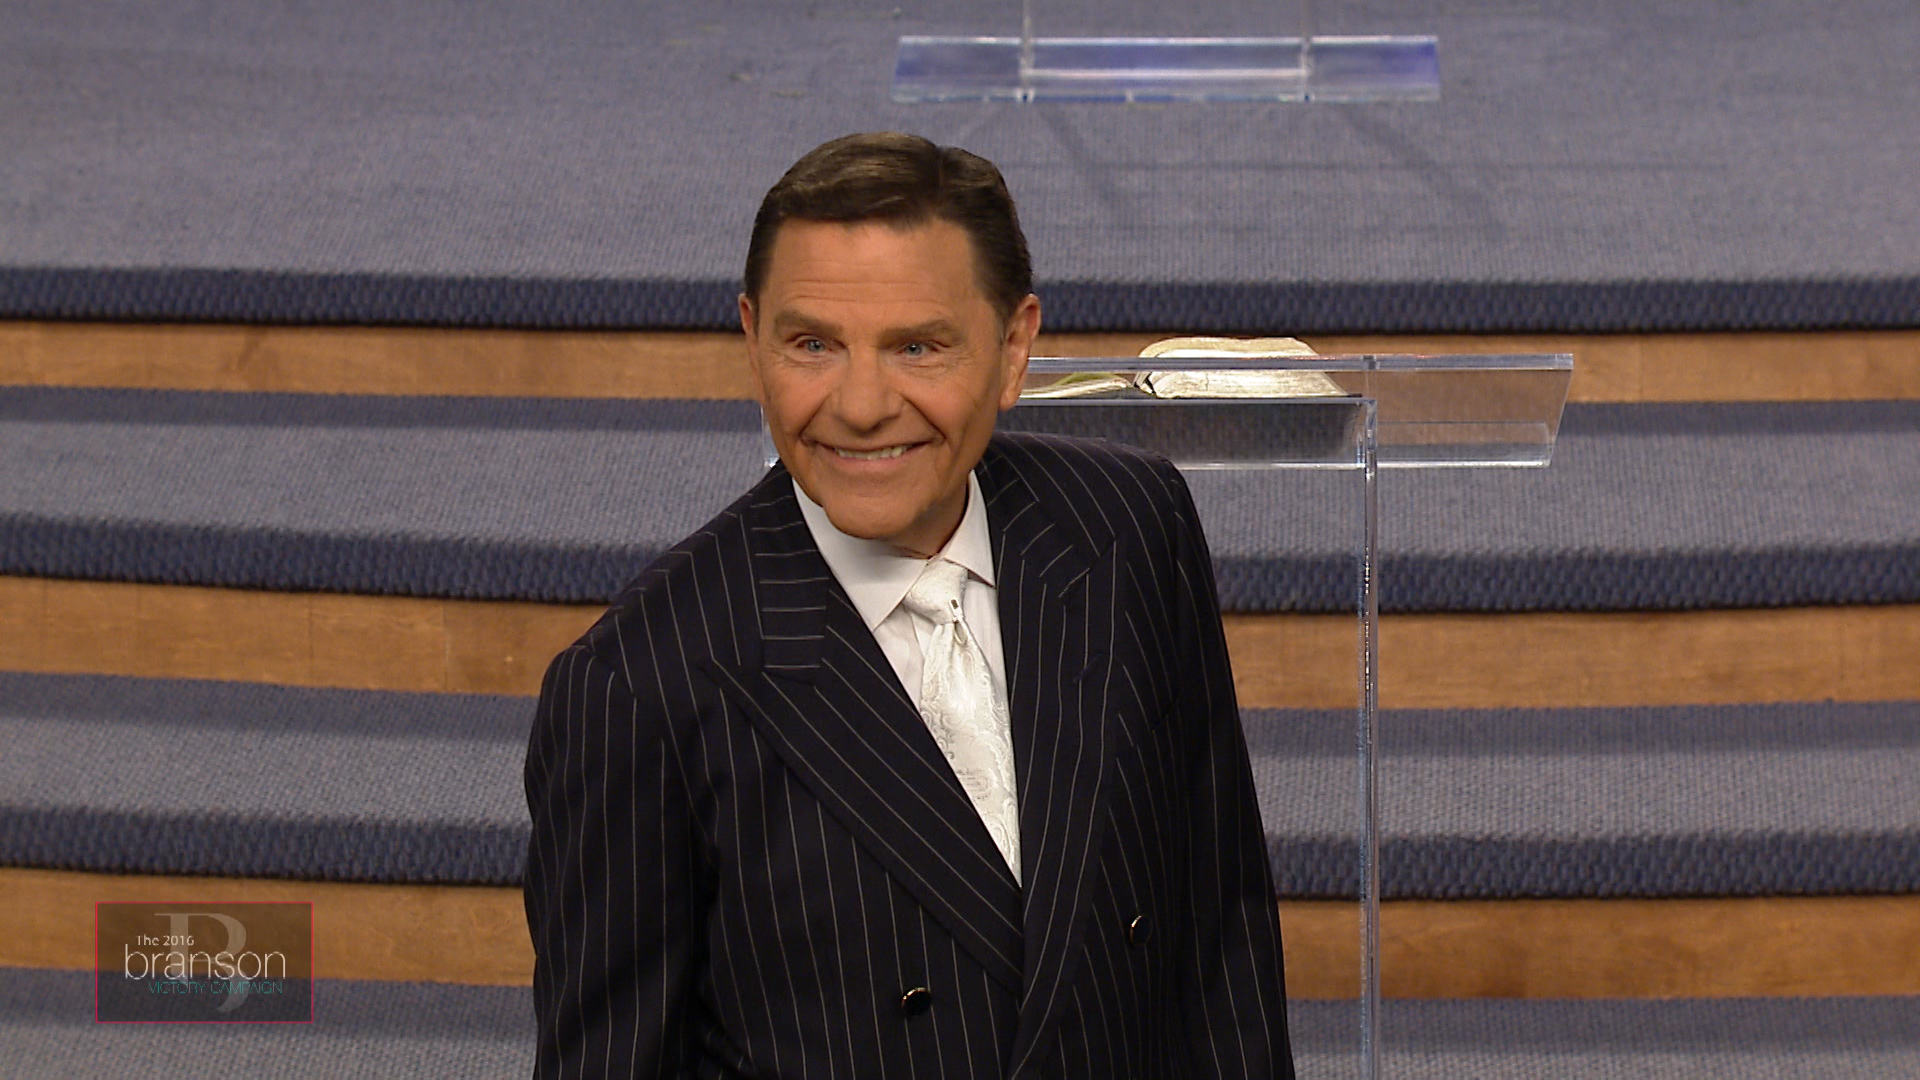 Join Kenneth Copeland for the Thursday evening offering message at the opening session of the 2016 Branson Victory Campaign, April 7-9, at Faith Life Church in Branson, Missouri.